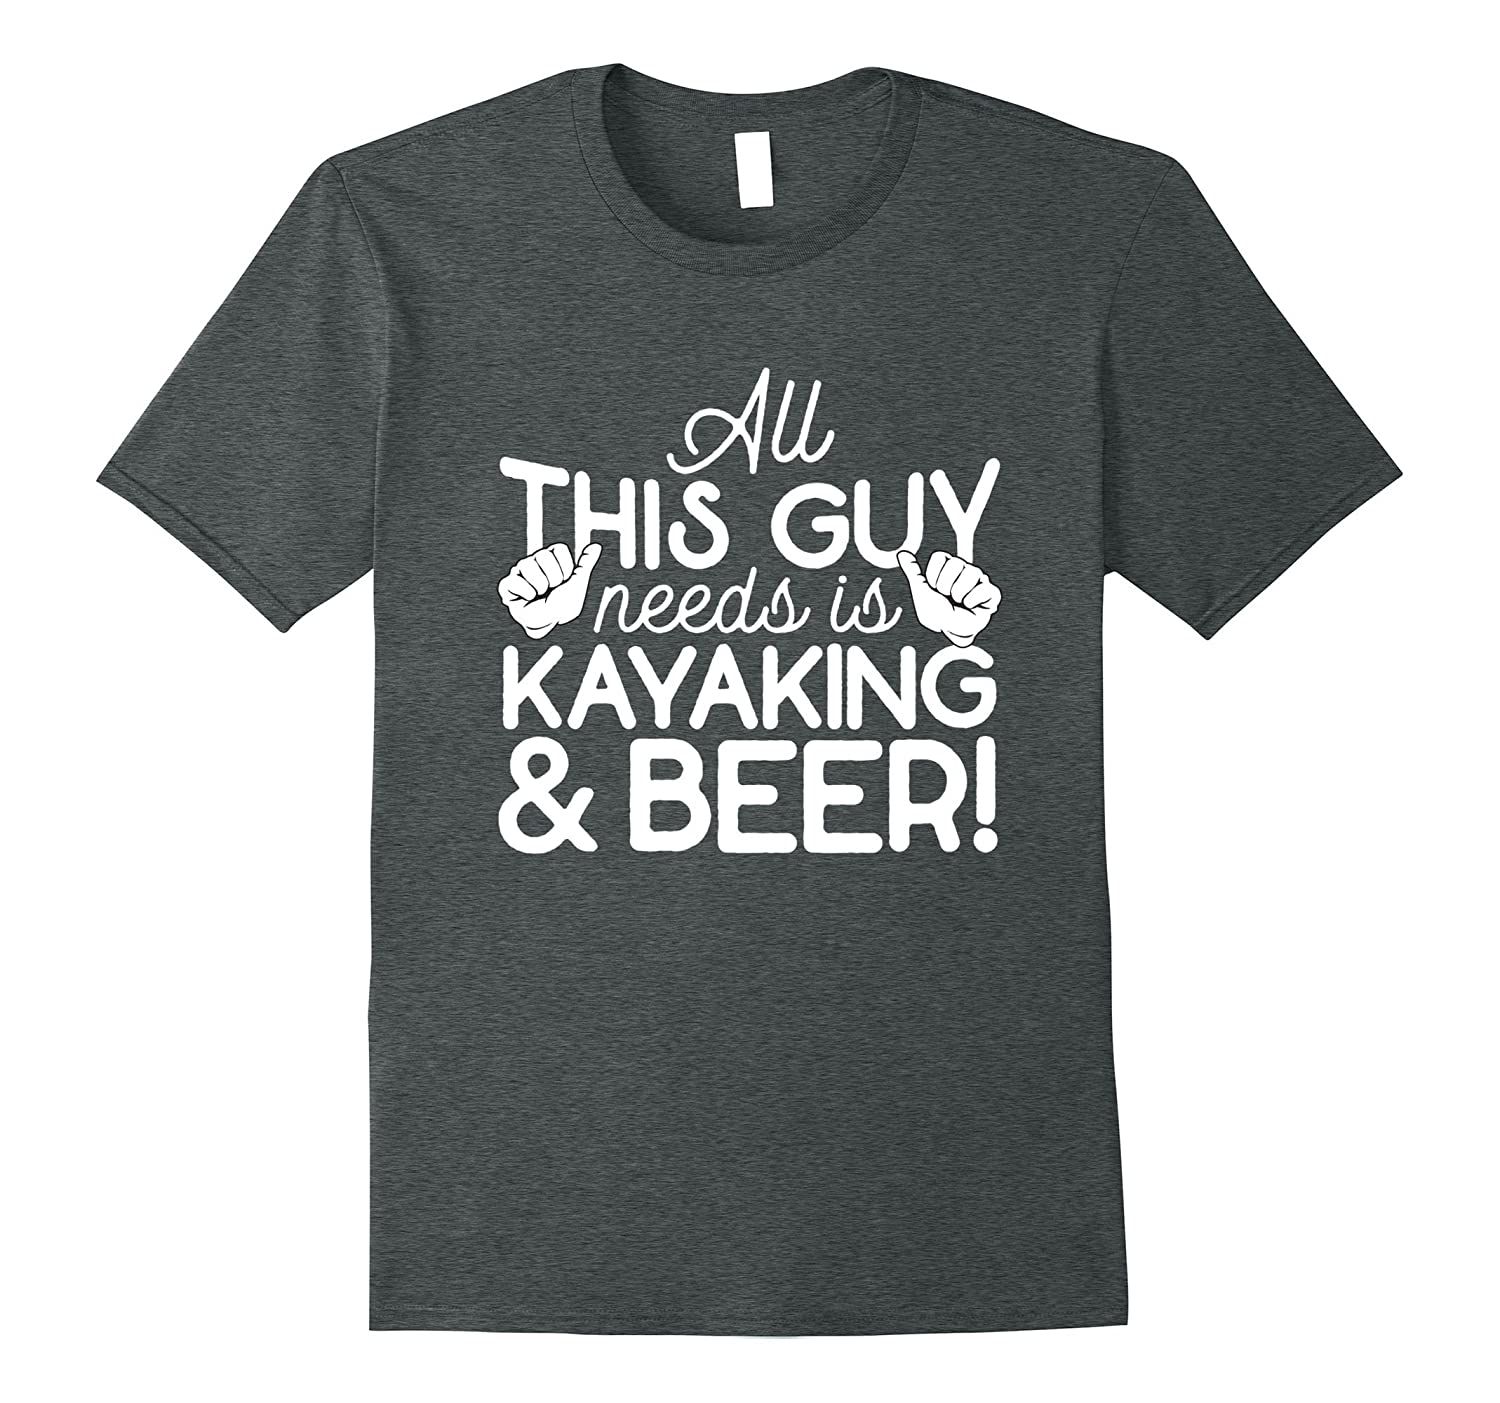 All This Guy Needs Is Kayaking & Beer Funny T Shirt-TH